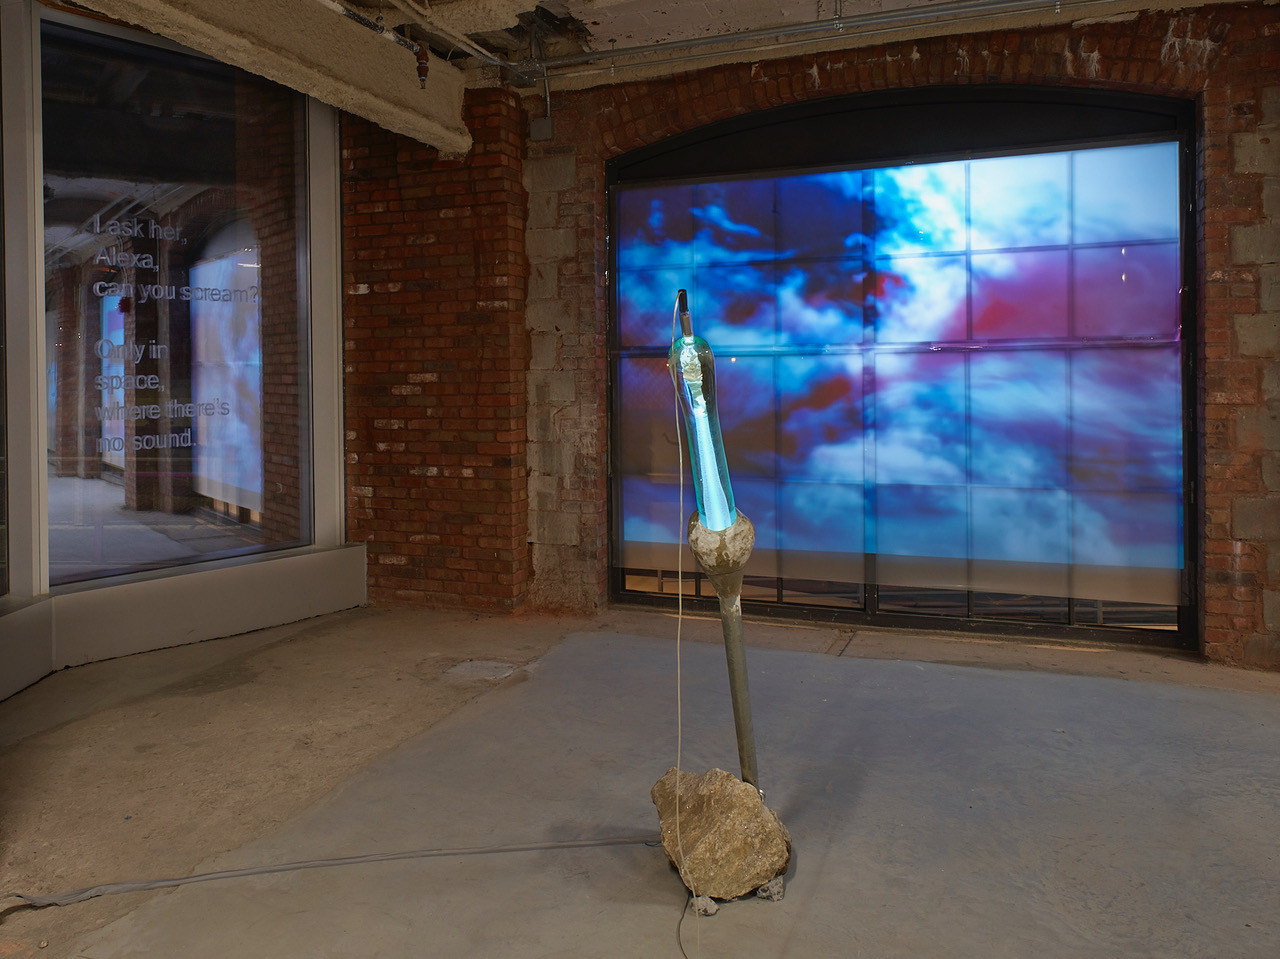 """left to right  Amanda Turner Pohan  """"Alexa, can you scream? Only in space, where there is no sound.""""  Excerpt from a conversation with the artist and Amazon's Alexa written in Artificial Cerumen (earwax) on glass window panel  48"""" x 40"""" 2020  Lara Saget and Joshua Raiffe """"Apex""""  Historic sourced Tuckahoe Marble, Historic sourced Tuckahoe Mico, Glass 12 x 12 x 8 inches 2019"""